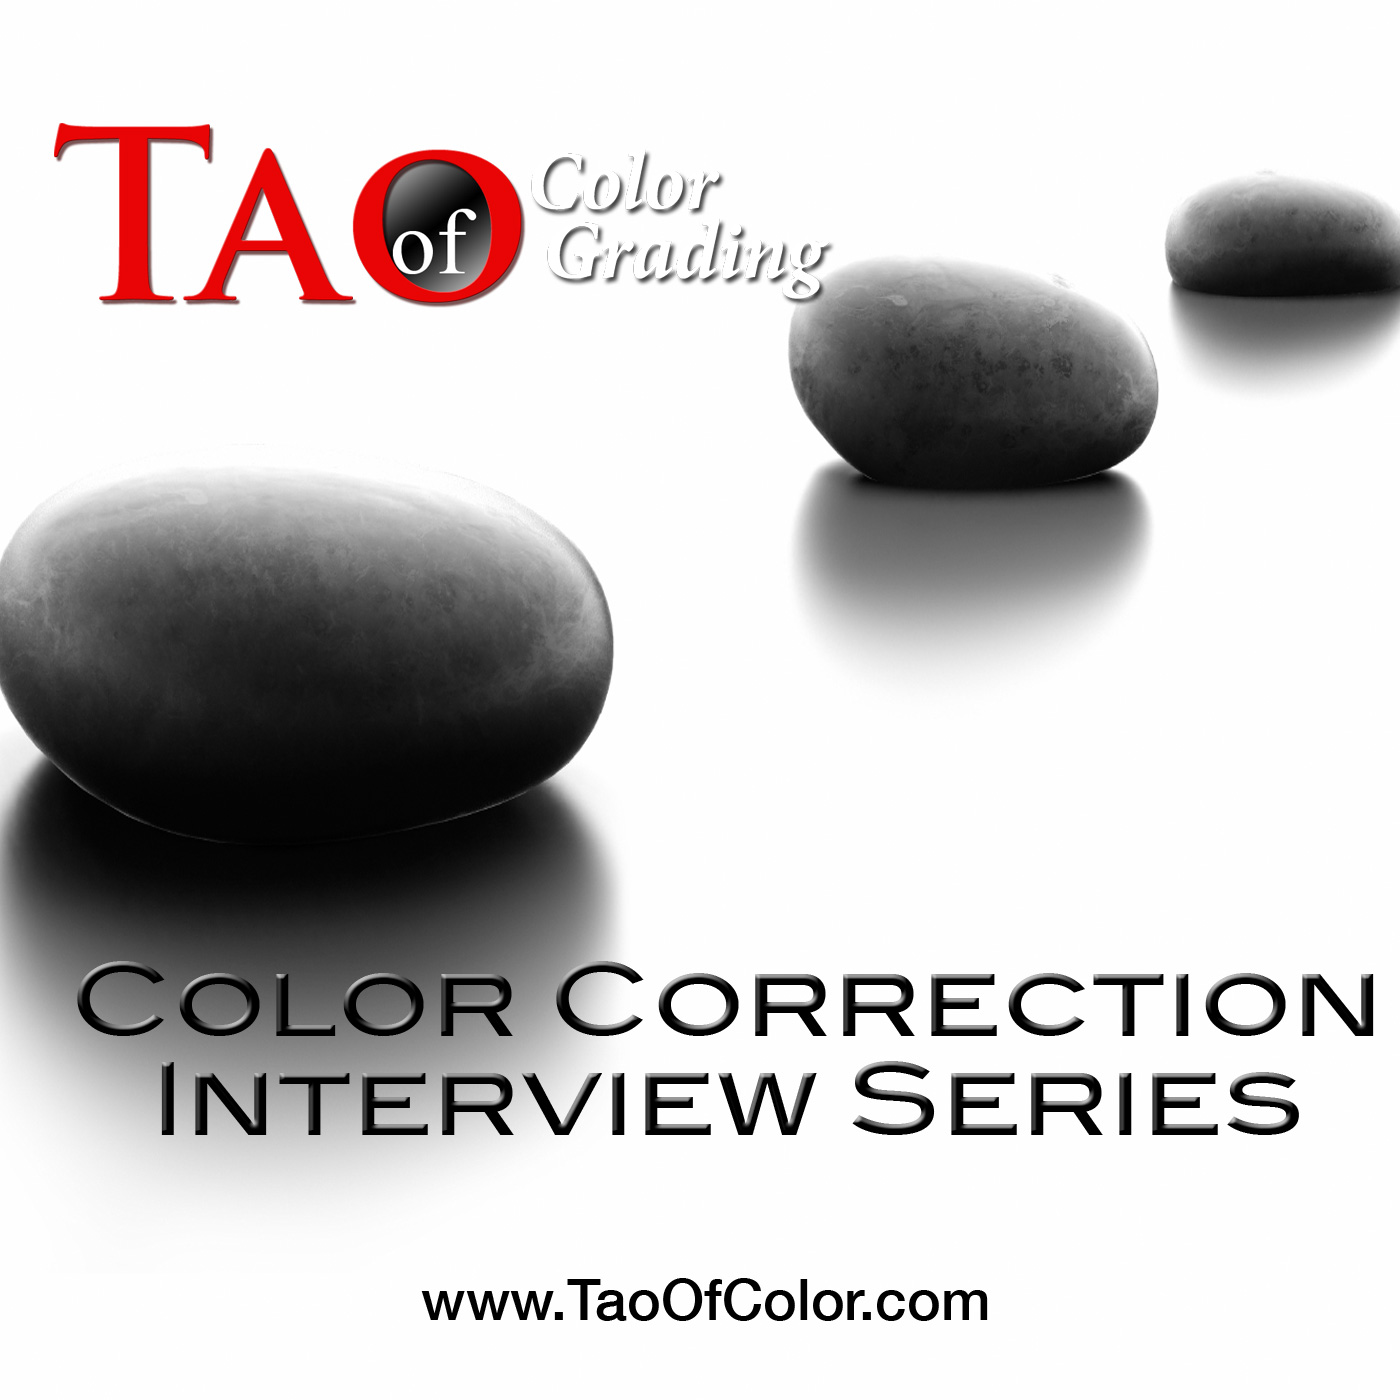 The Color Correction Interview Series by TaoOfColor.com